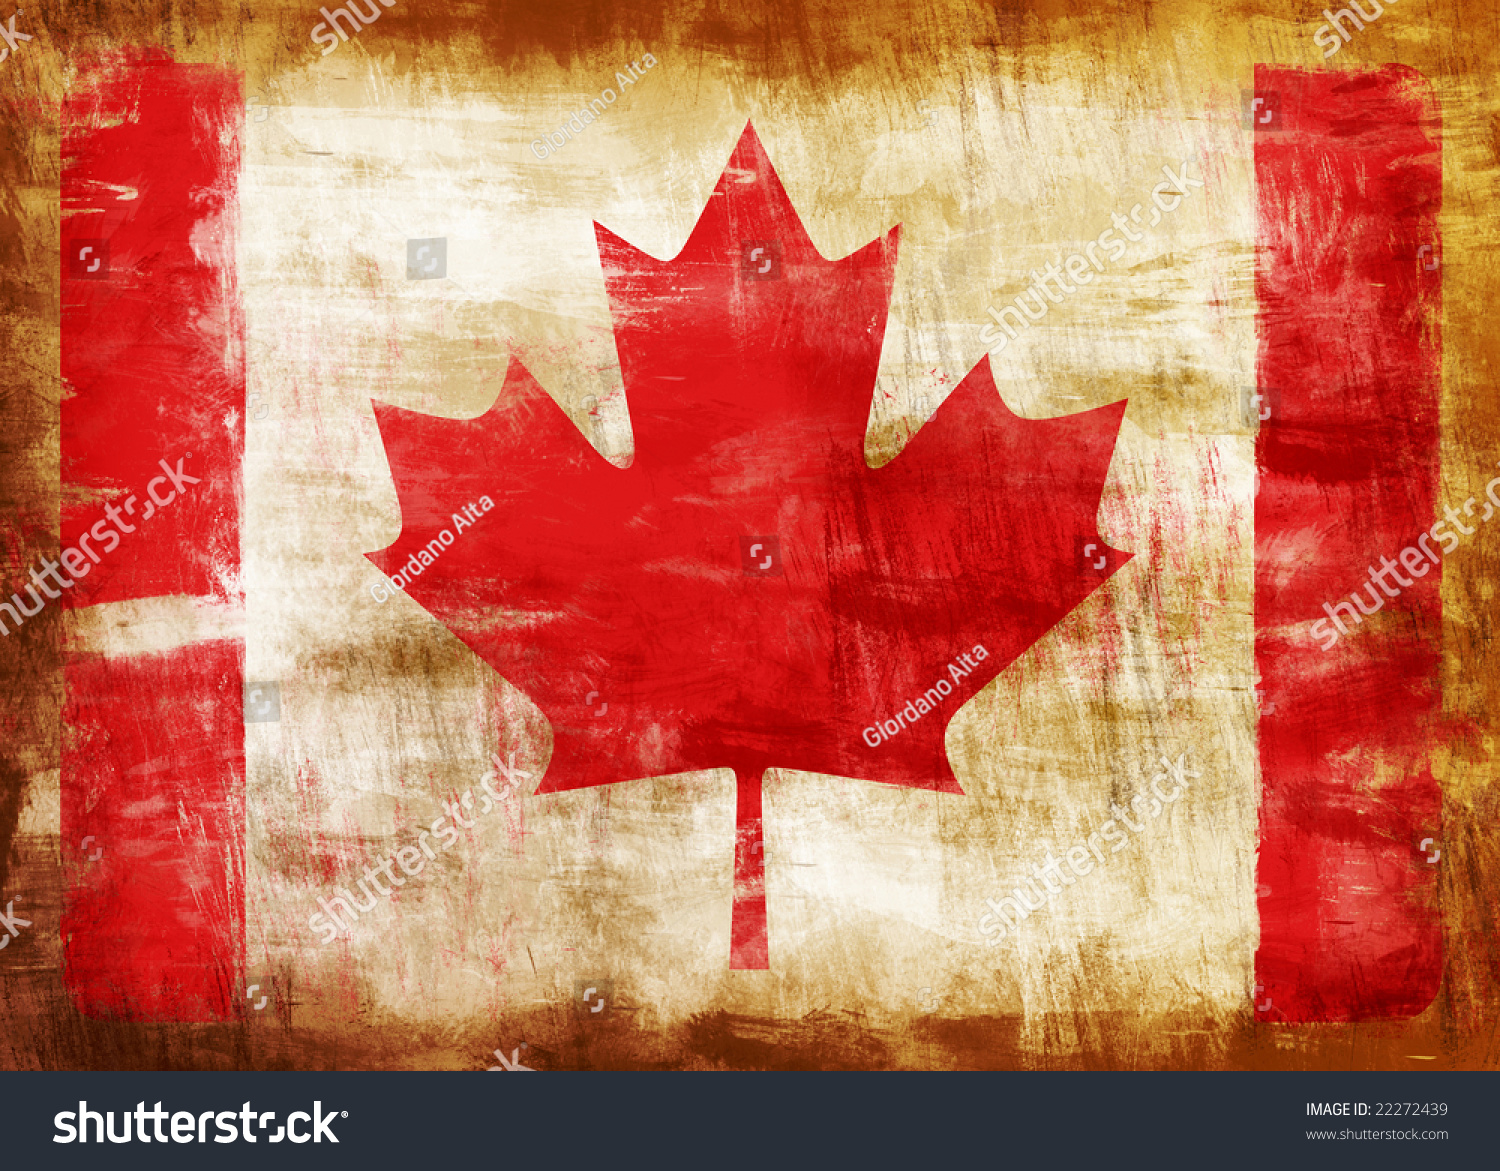 old dirty canada flag painted stock illustration 22272439